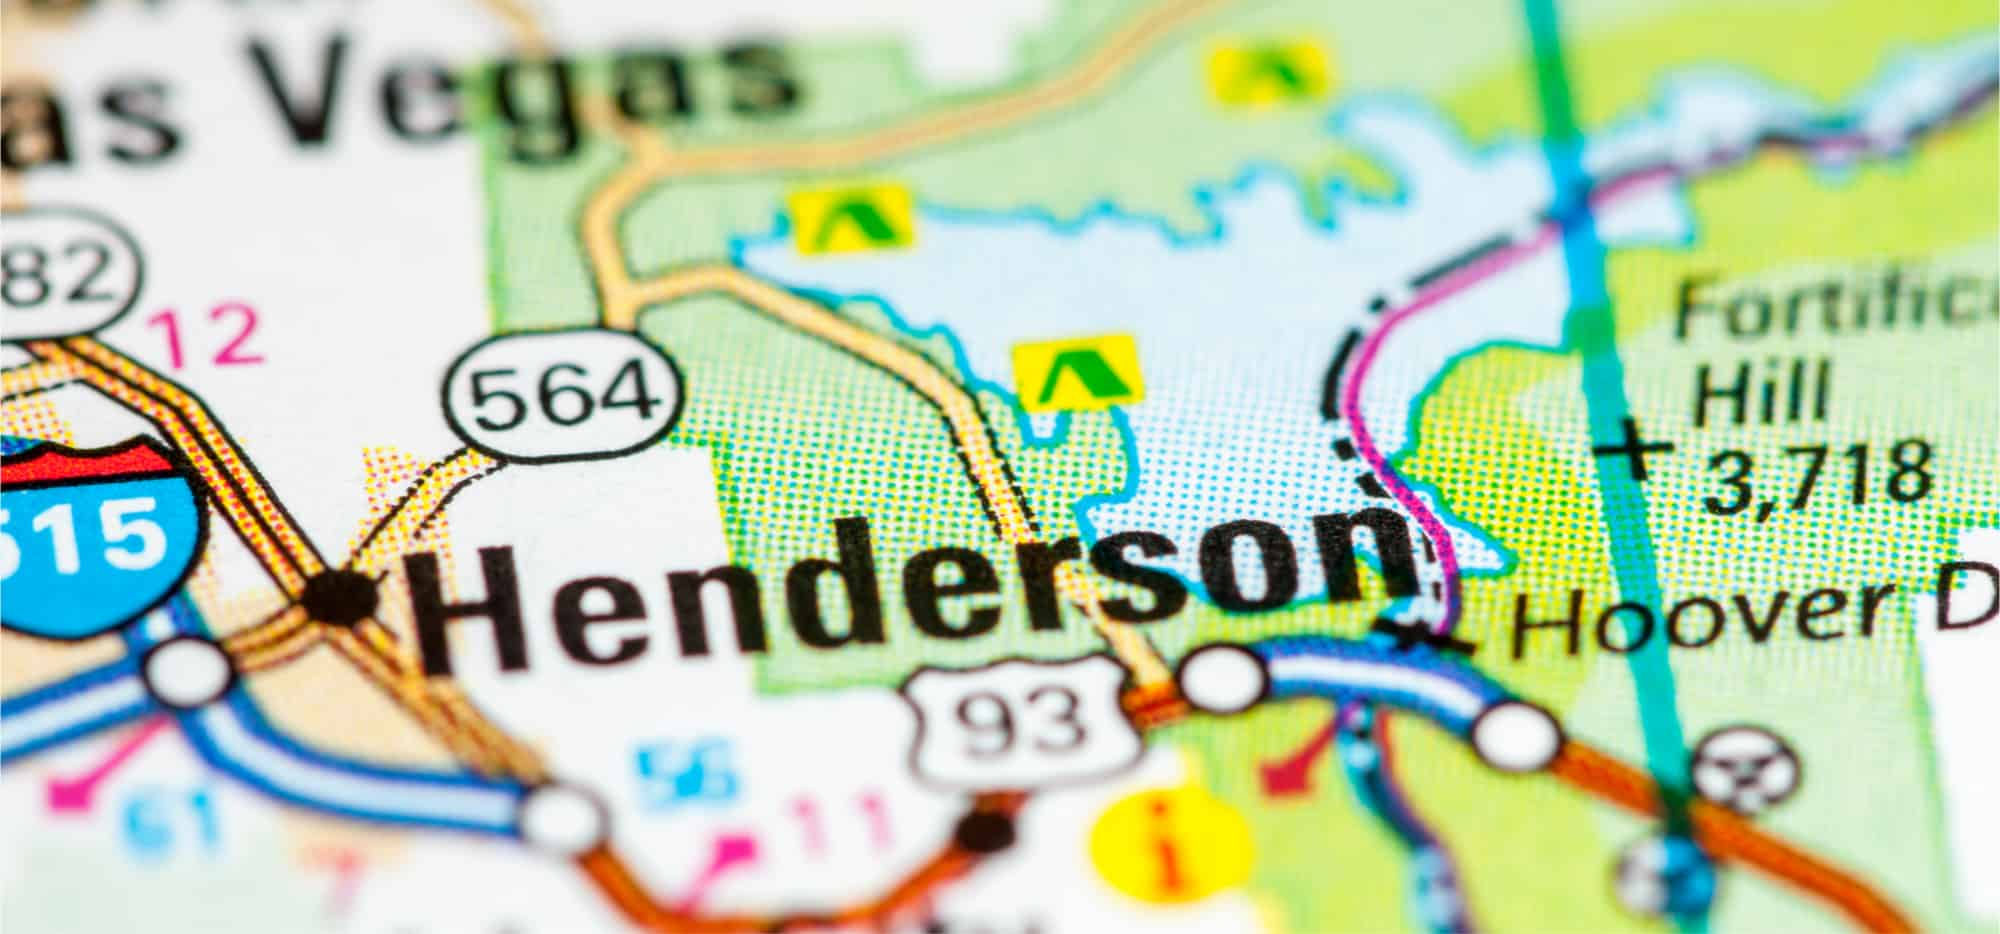 Hendseron best city to buy a home in